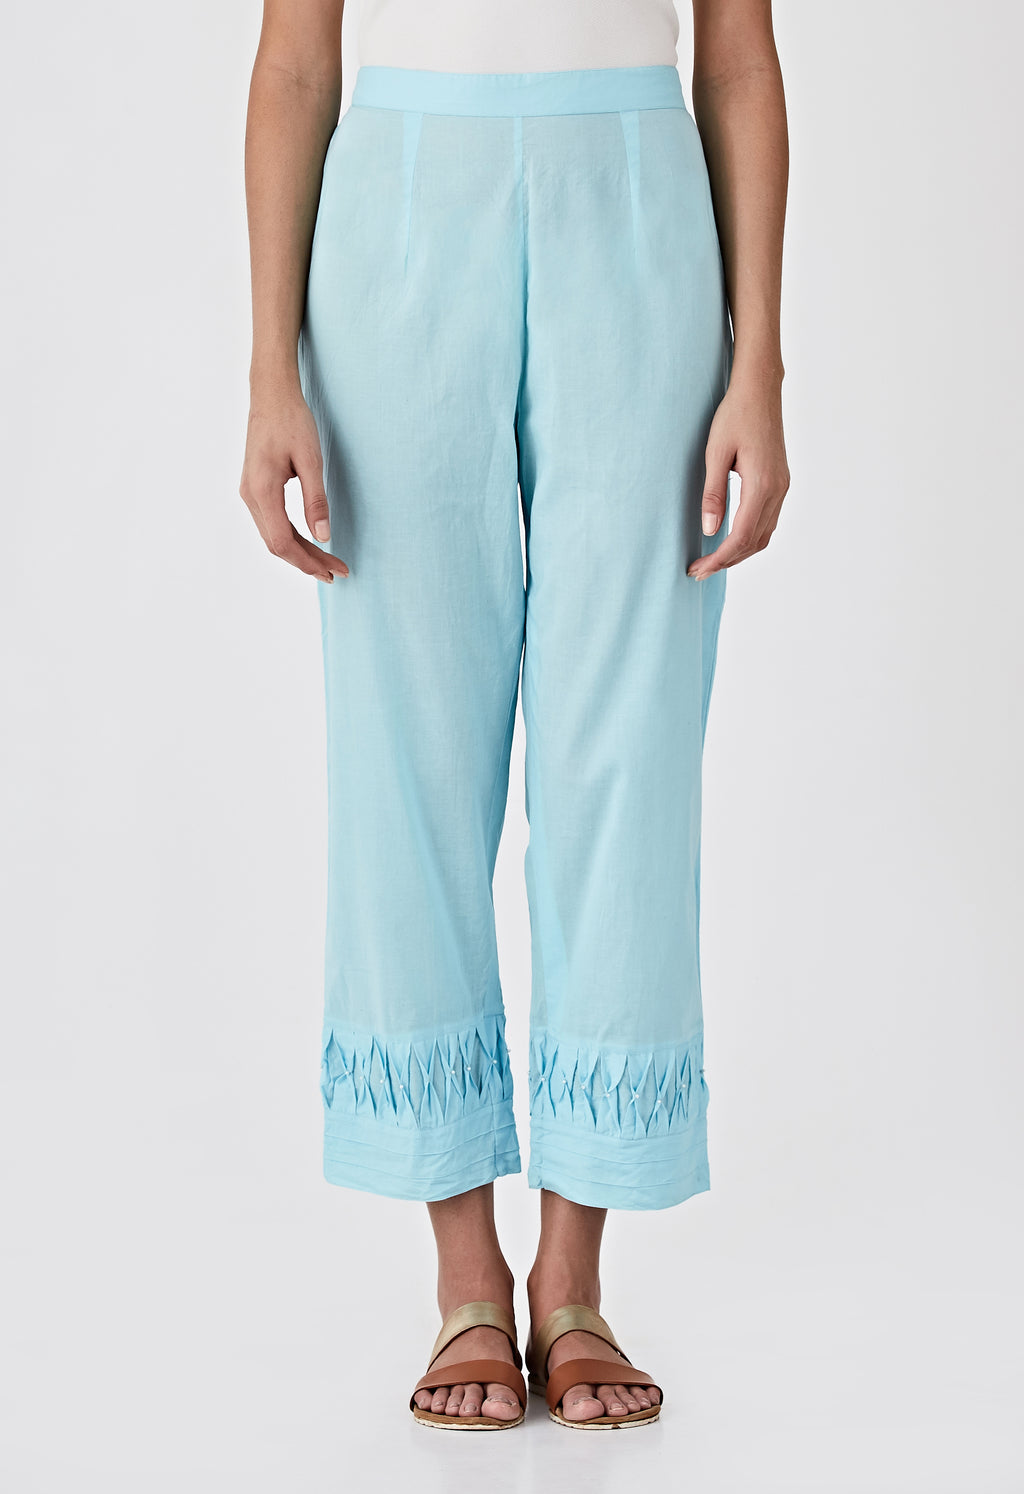 Smocked Detail Pants- Blue